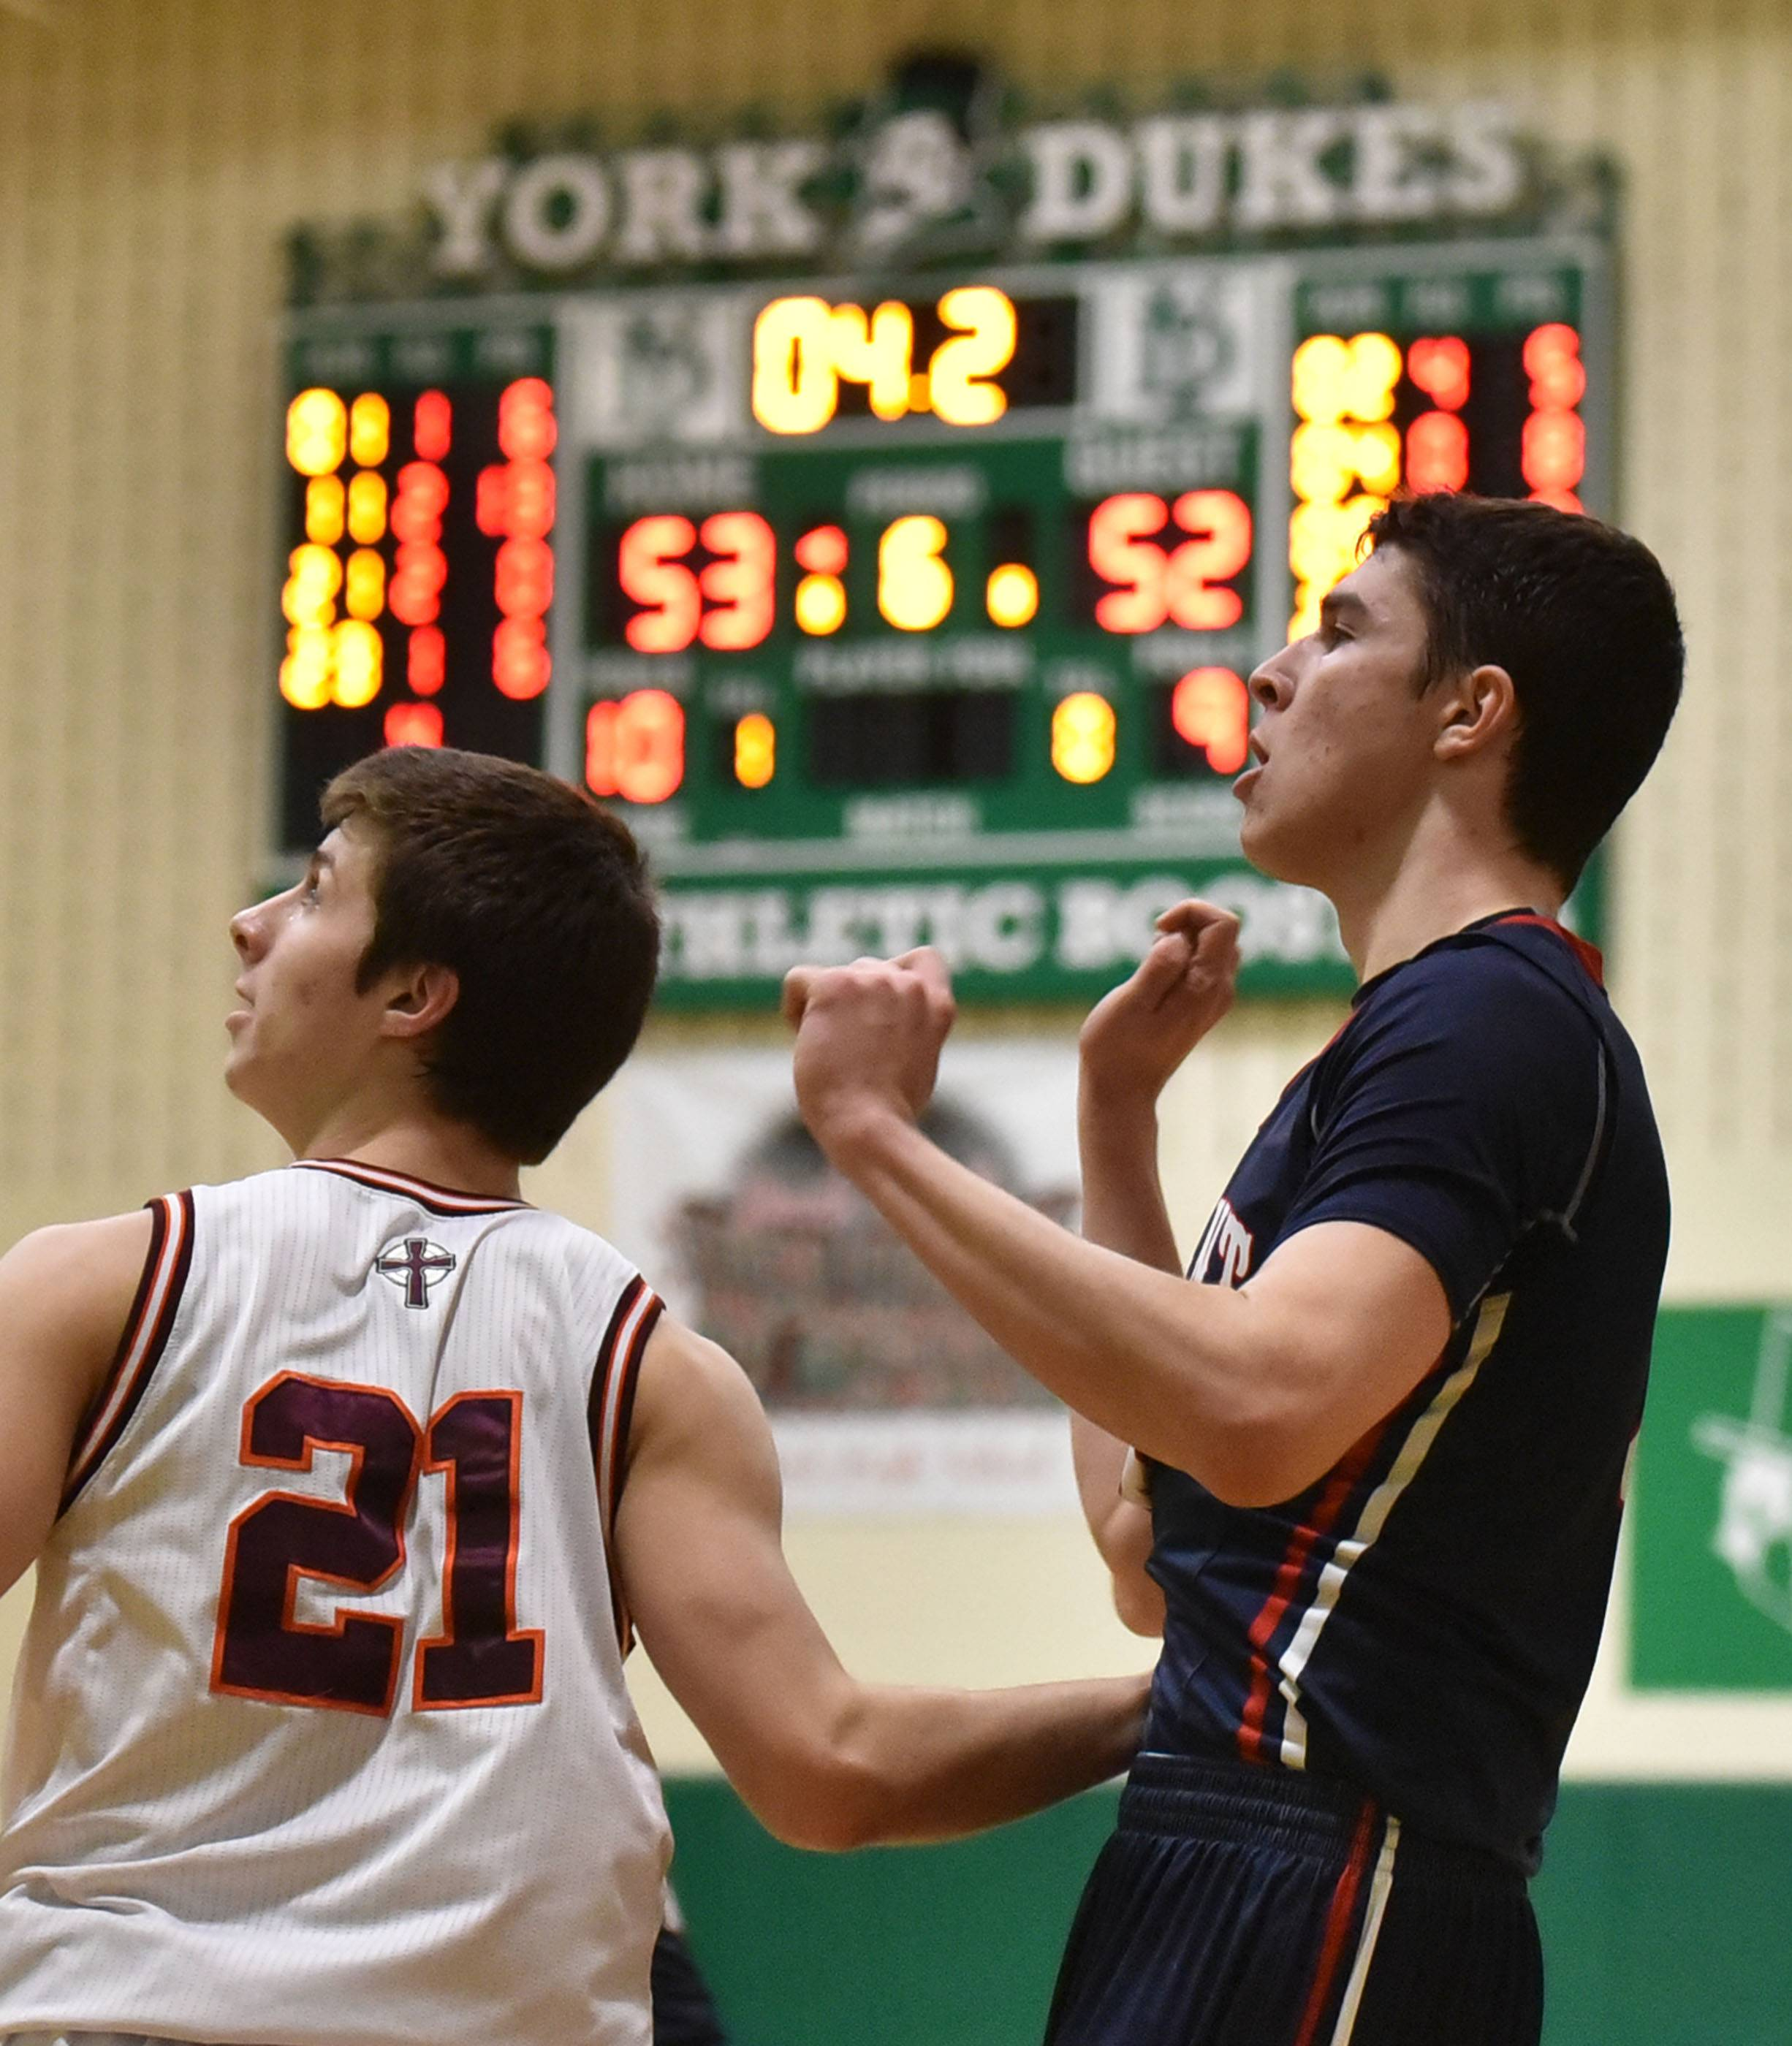 Conant's Jonathan Kolev, right, and Brother Rice's Matt Fitzpatrick watch Kolev's game-winning shot, which made it 54-53 in the Cougars' favor with 4.2 seconds left in double ovetime Saturday at York High School in Elmhurst..